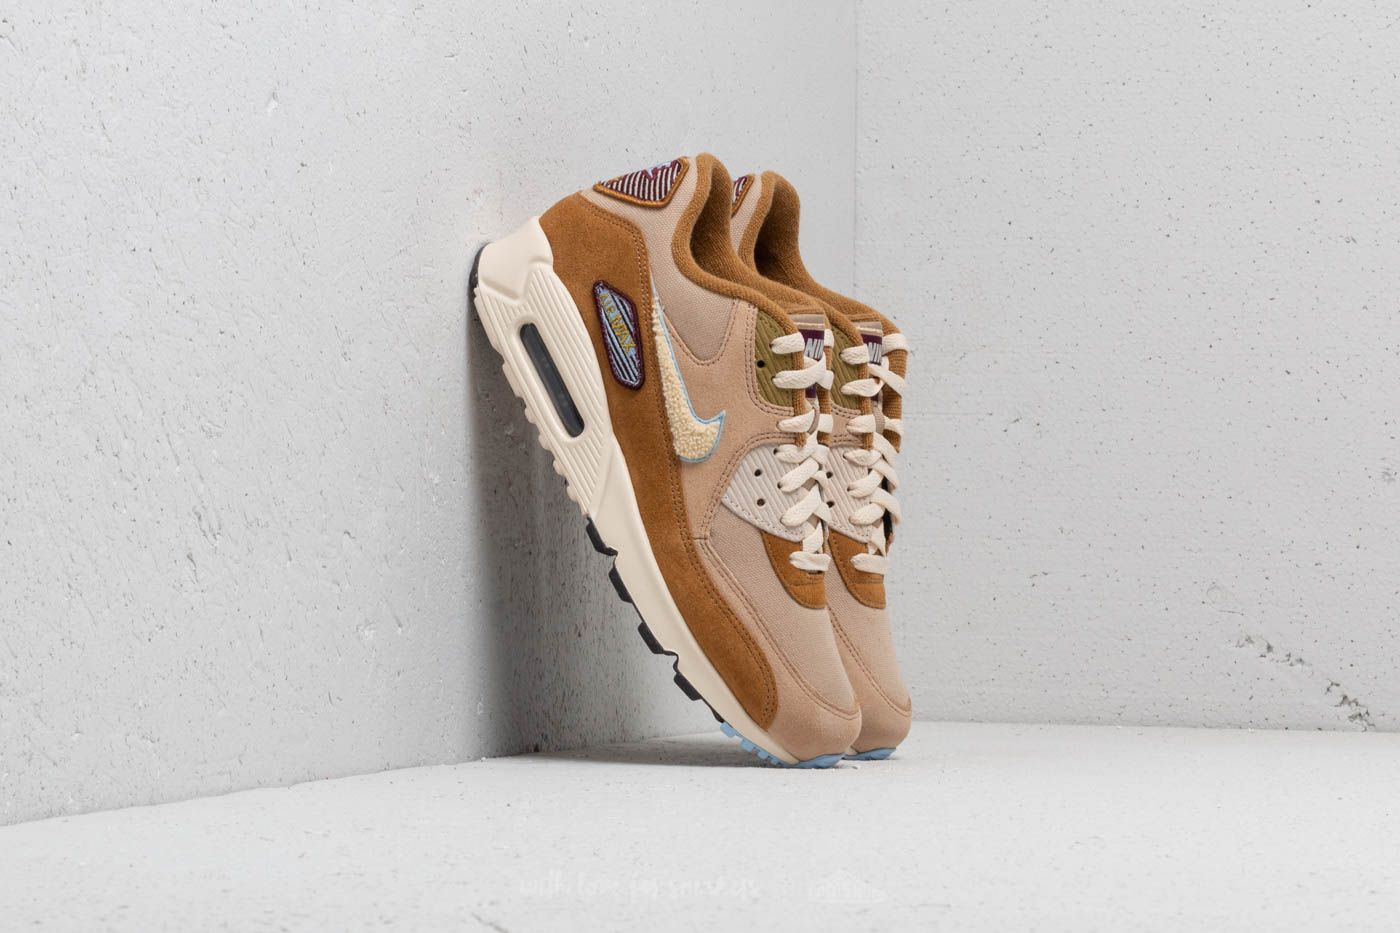 ffd77aa9a Nike Air Max 90 Premium SE Muted Bronze/ Light Cream | Footshop